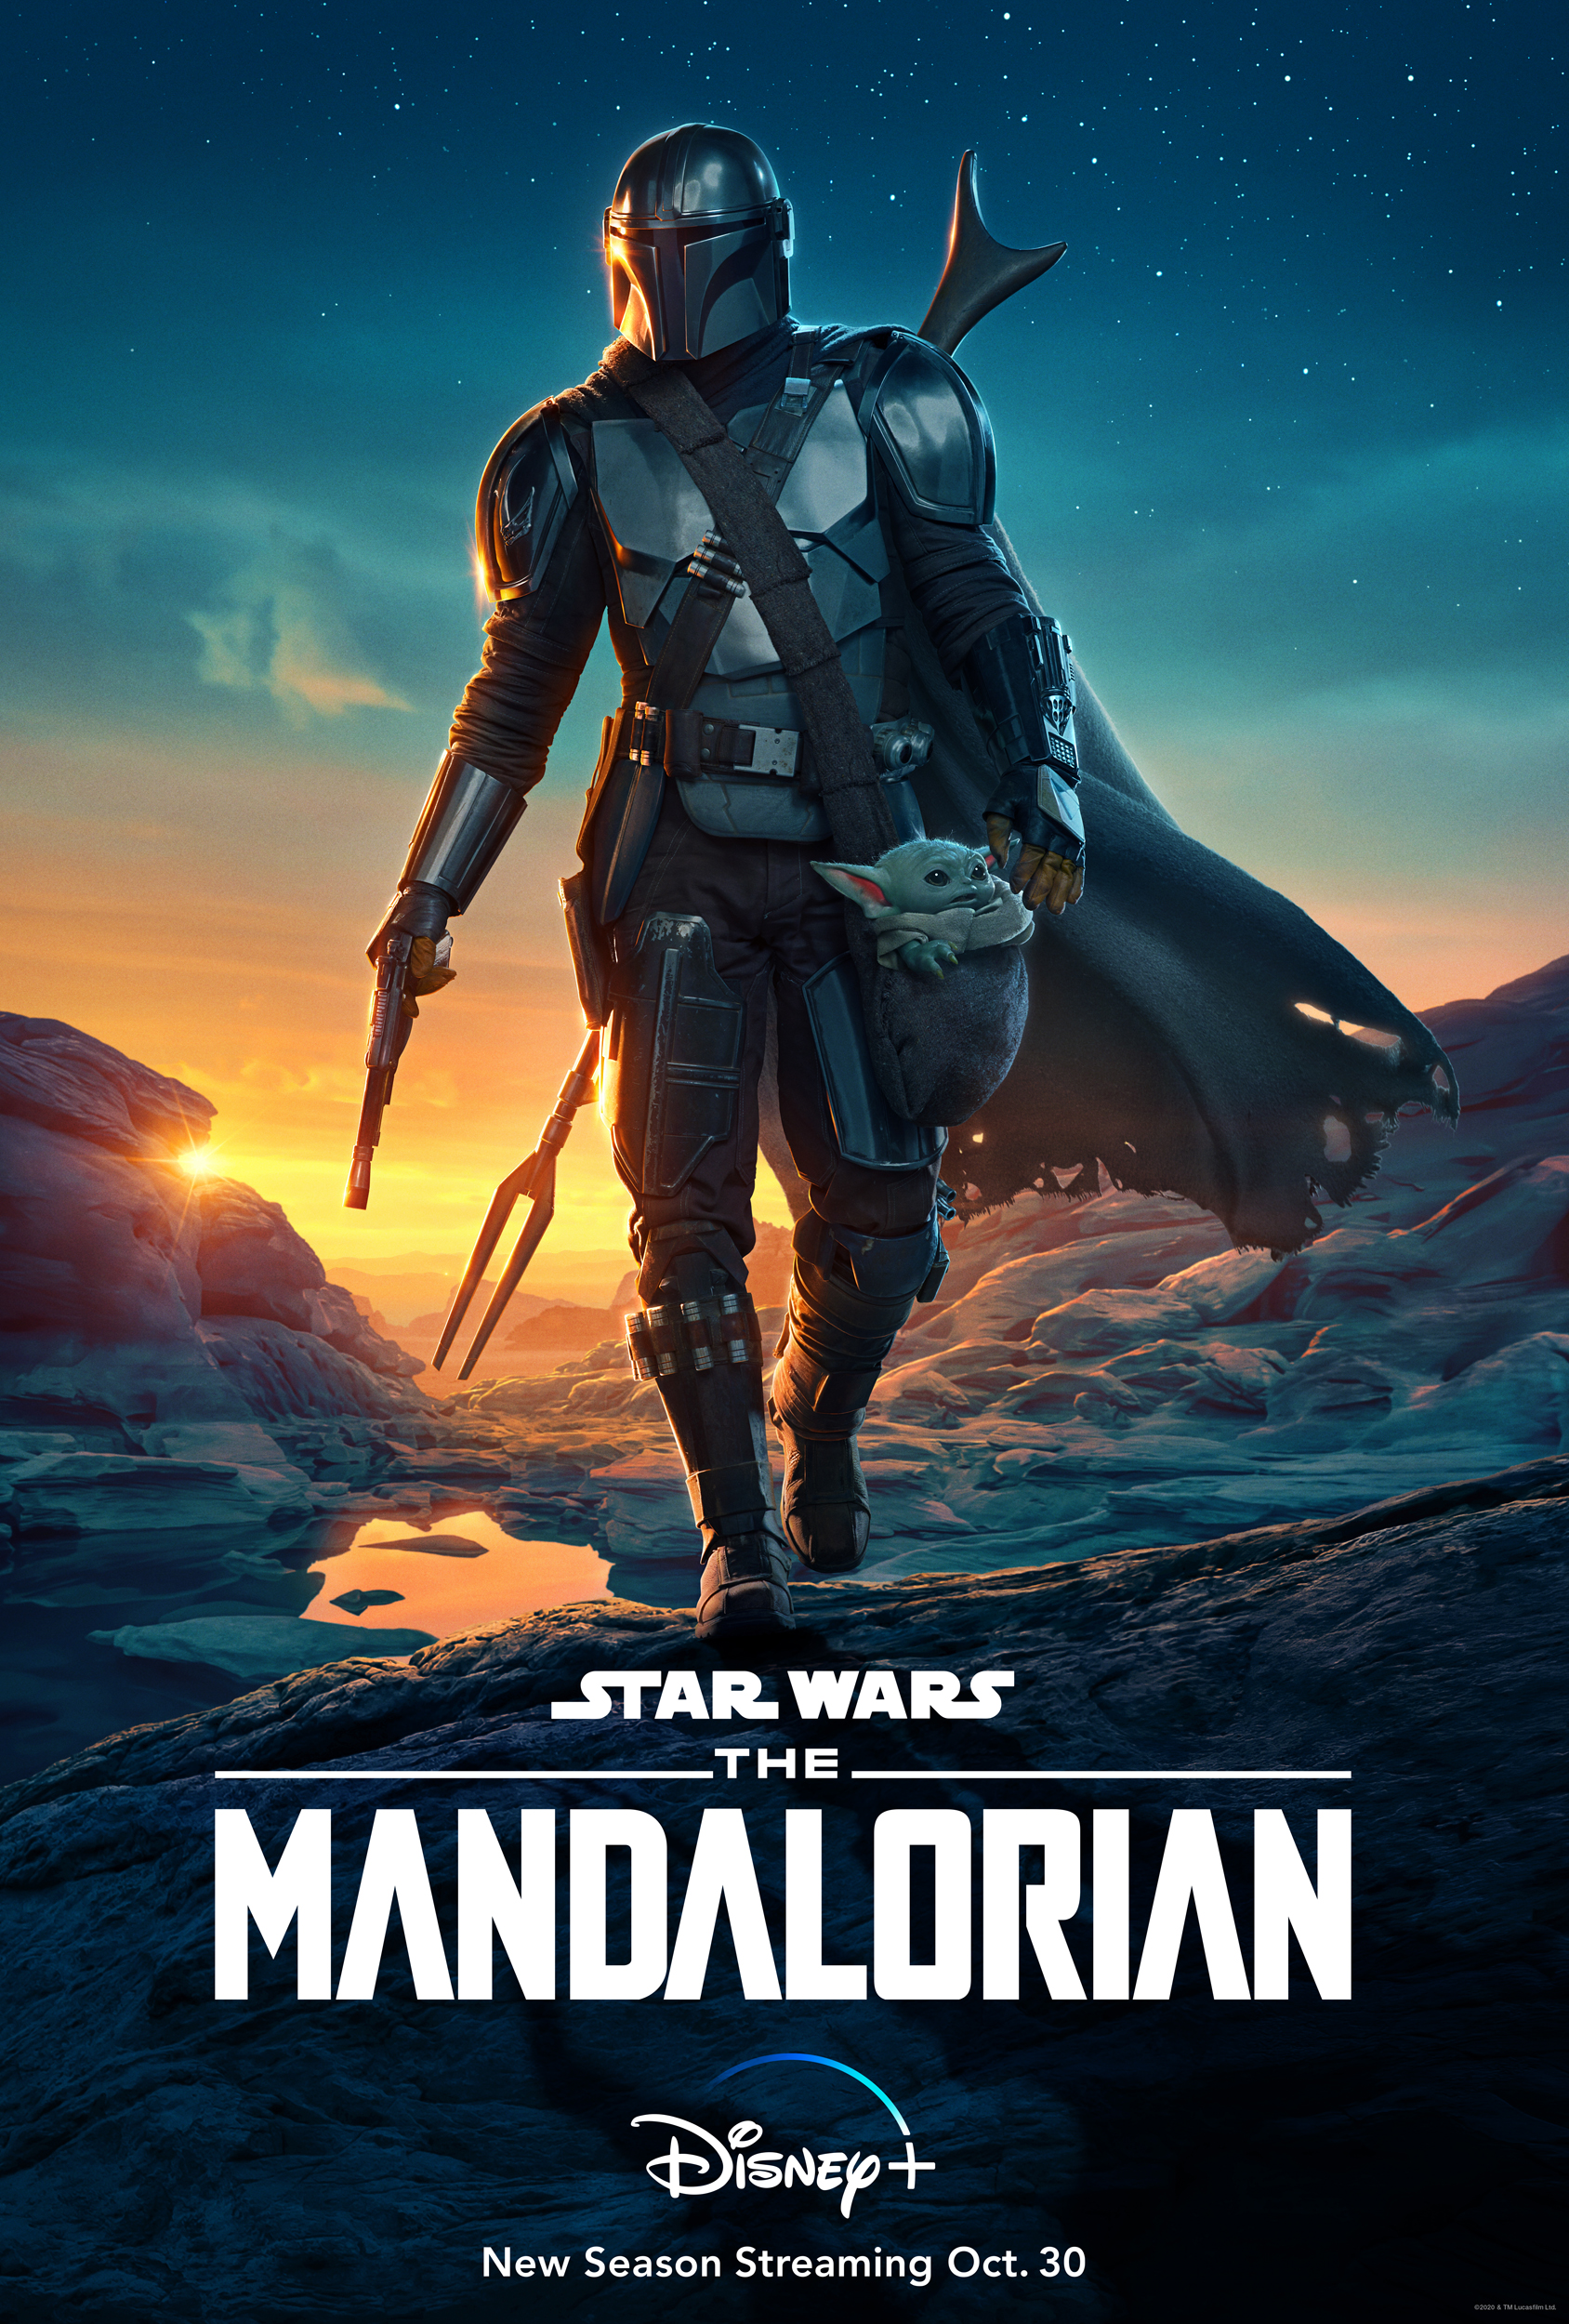 Star Wars The Mandalorian from Disney